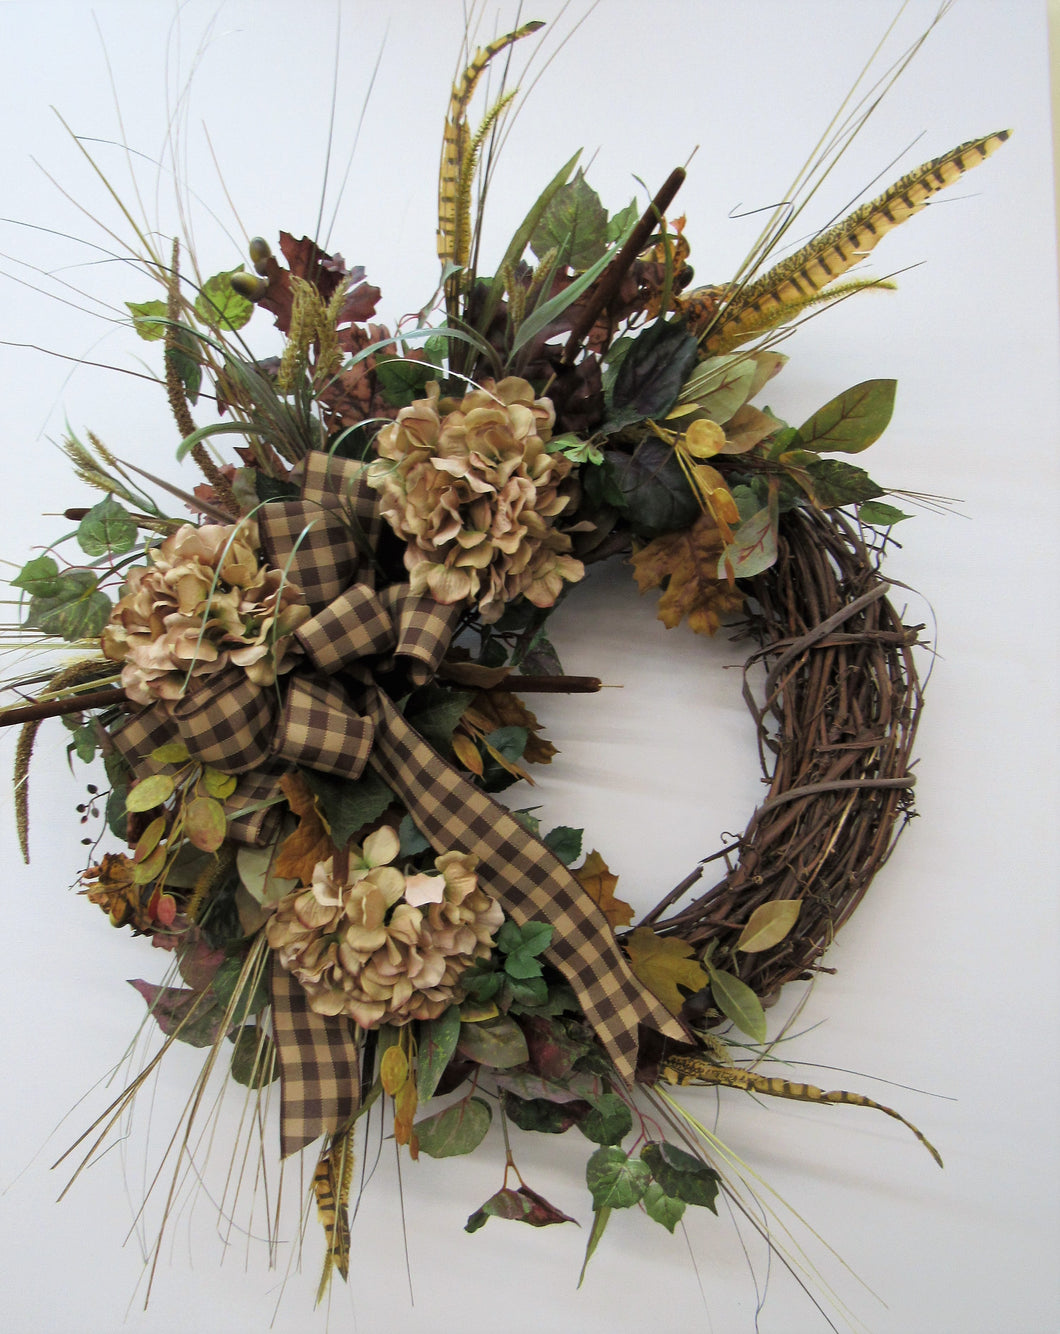 Gallery/Harv25 - April's Garden Wreath